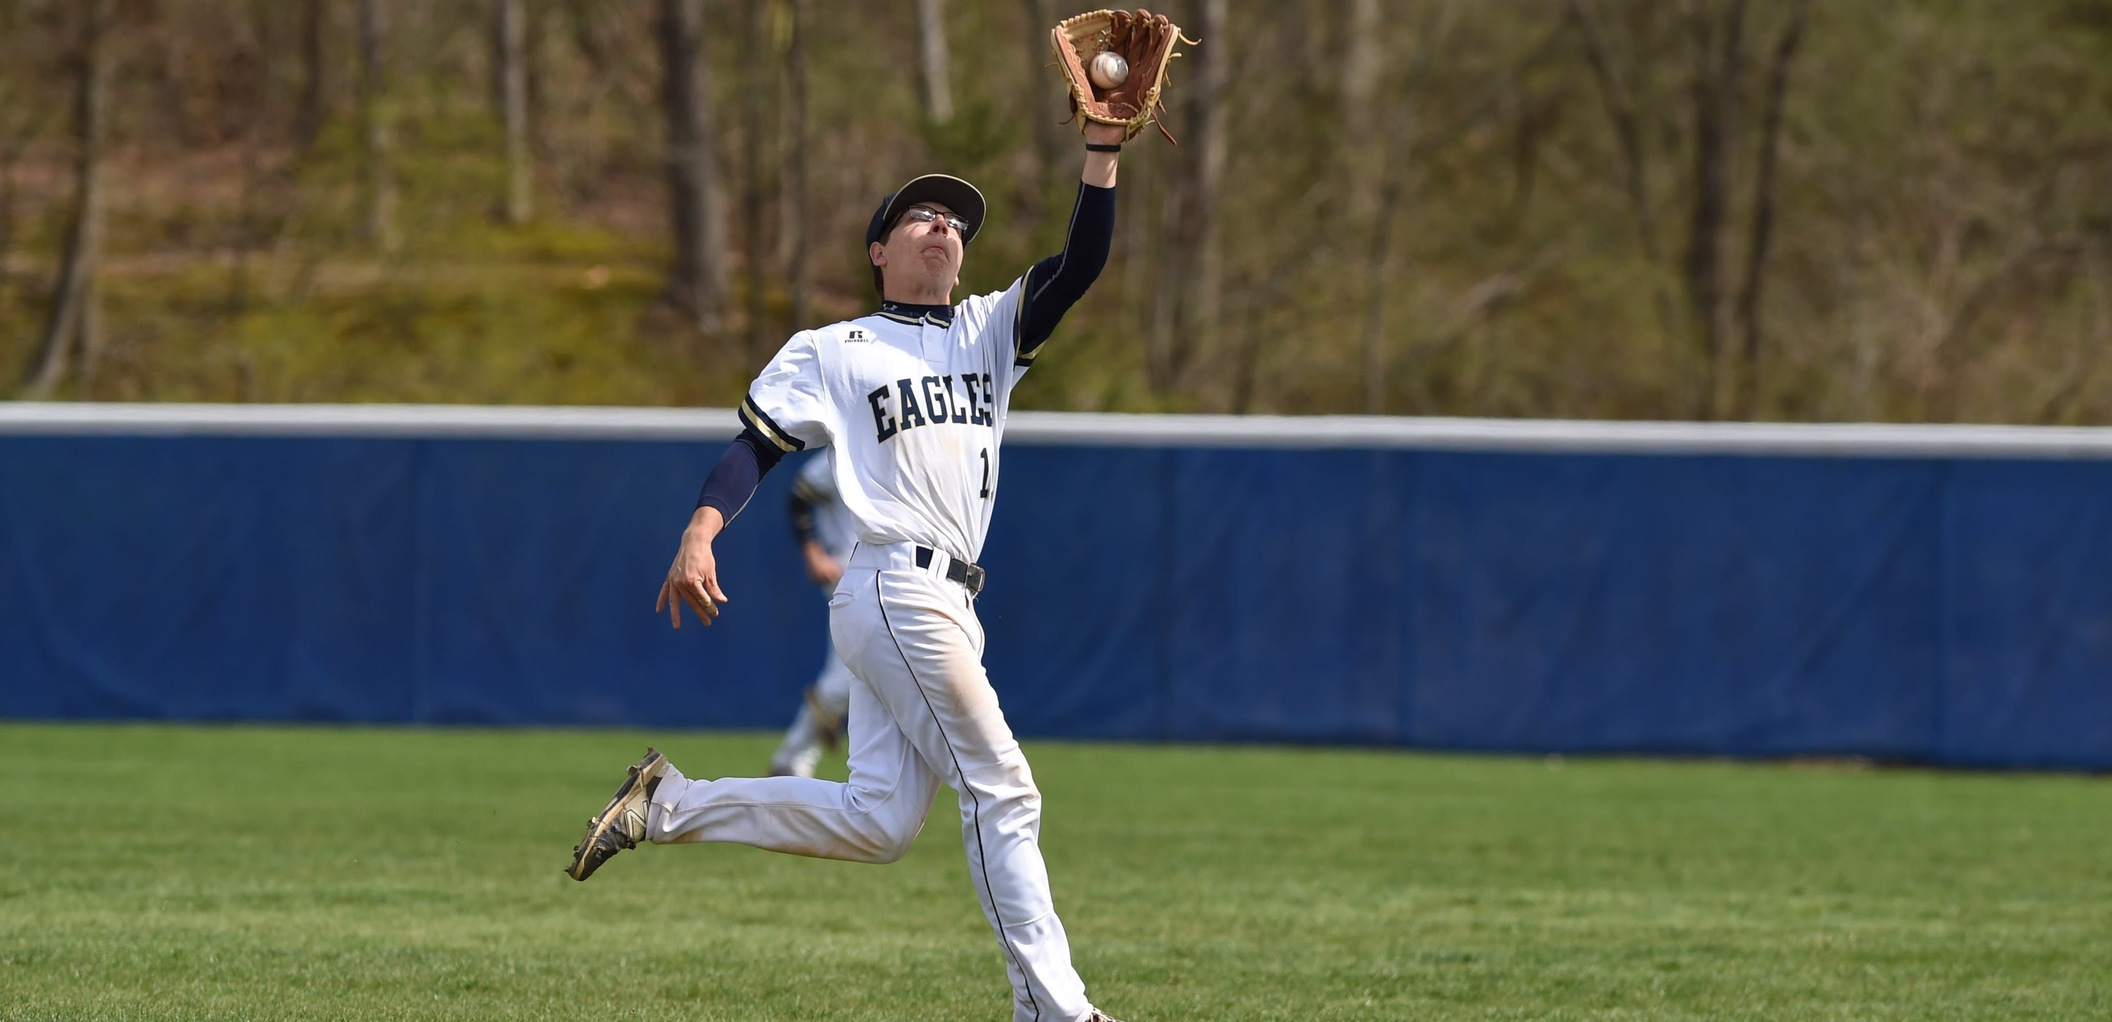 Royals Edge Out Eagles in Doubleheader